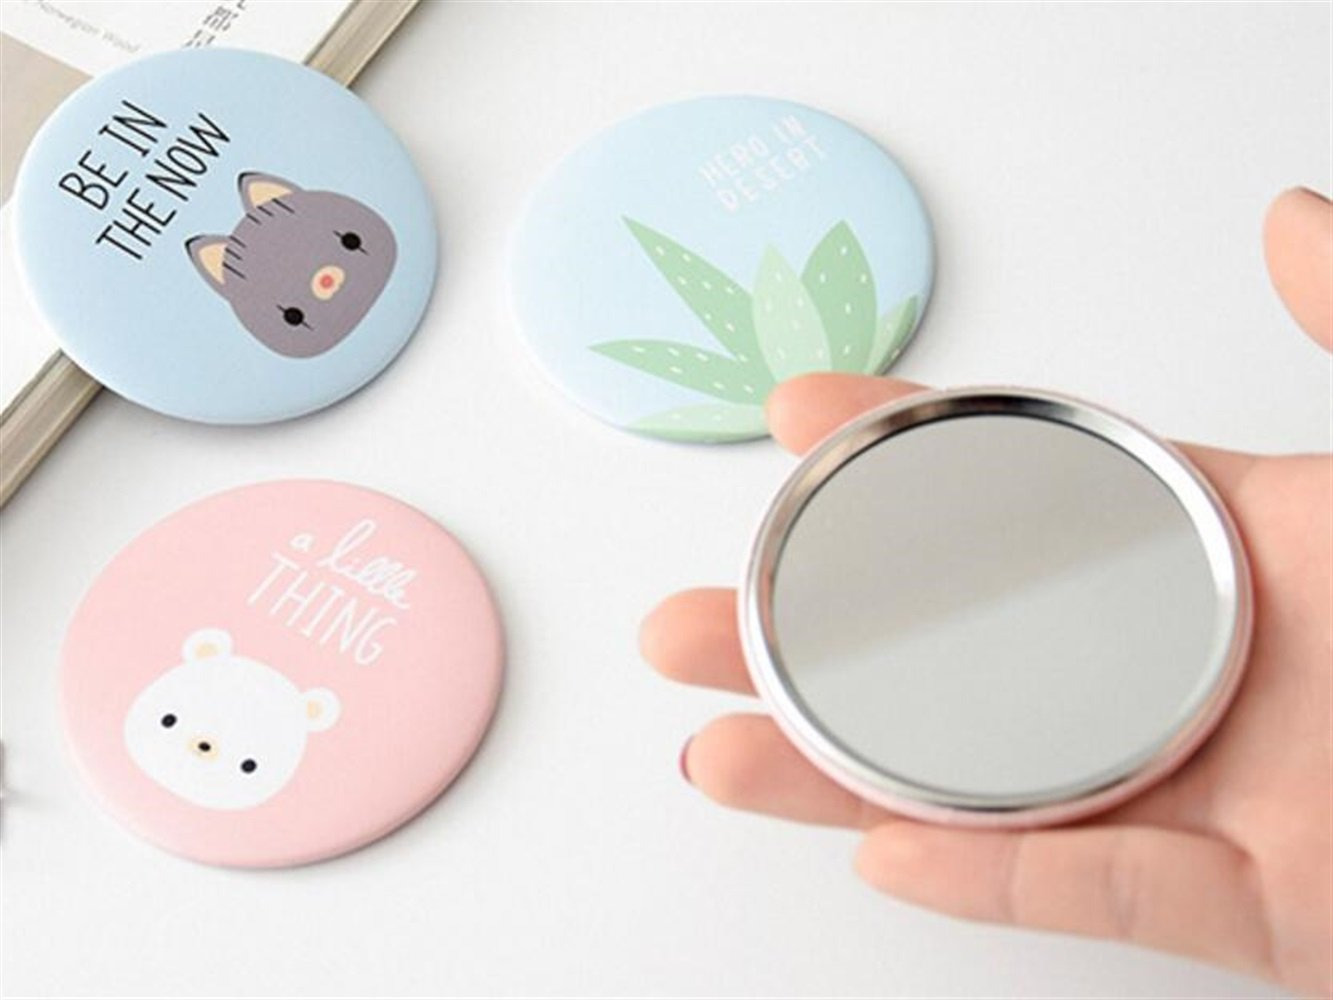 Yingealy Childrens Mirror Mini Round Cartoon Goose Pattern Small Glass Mirrors Circles for Crafts Decoration Cosmetic Accessory by Yingealy (Image #6)